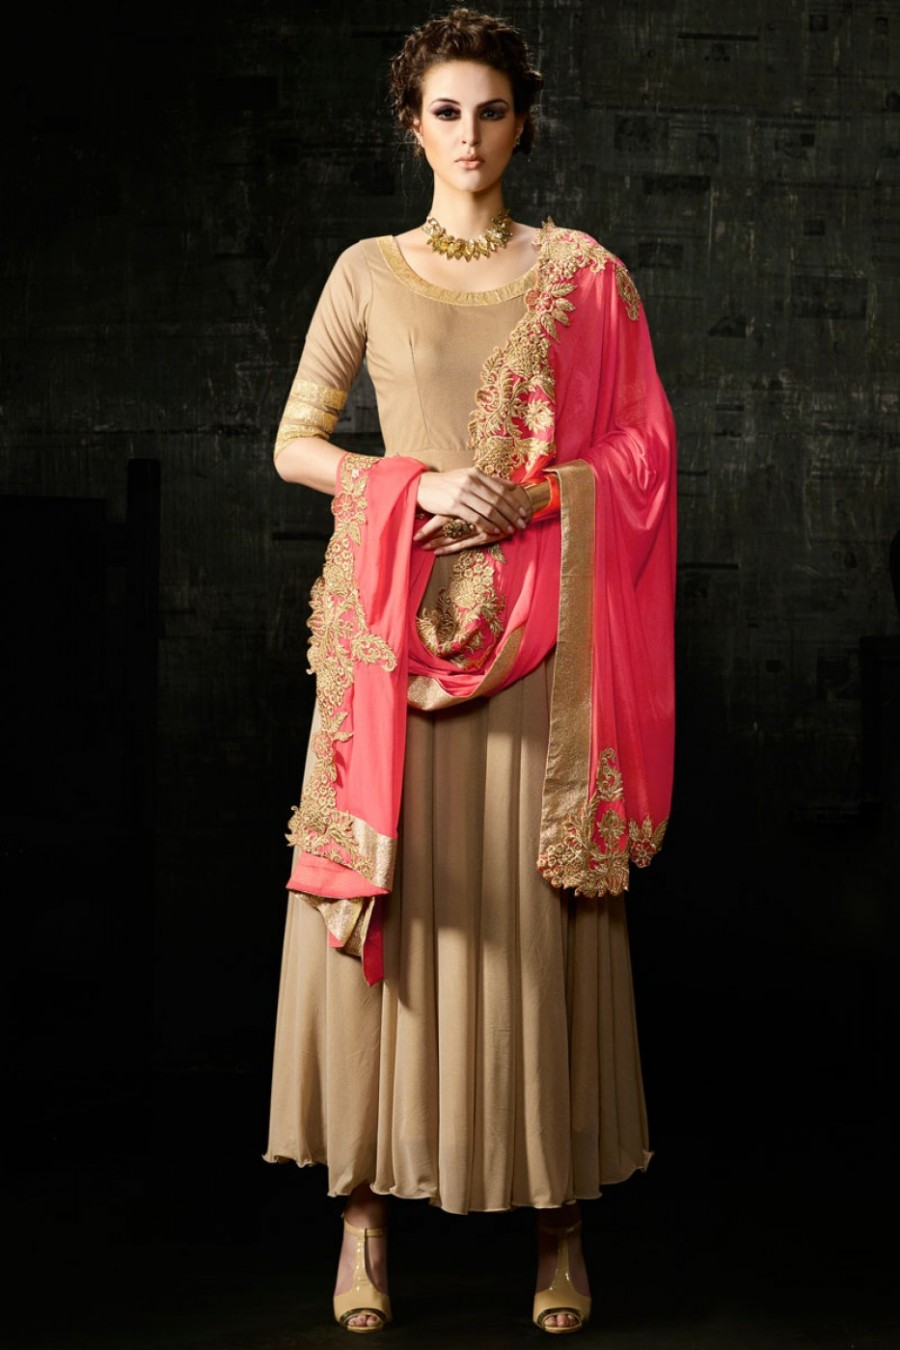 6b2ffac870 Buy Beige and Pink Designer Heavy Cut Work Embroidered Unique Anarkali  Churidar Suit in Georgette Fabric